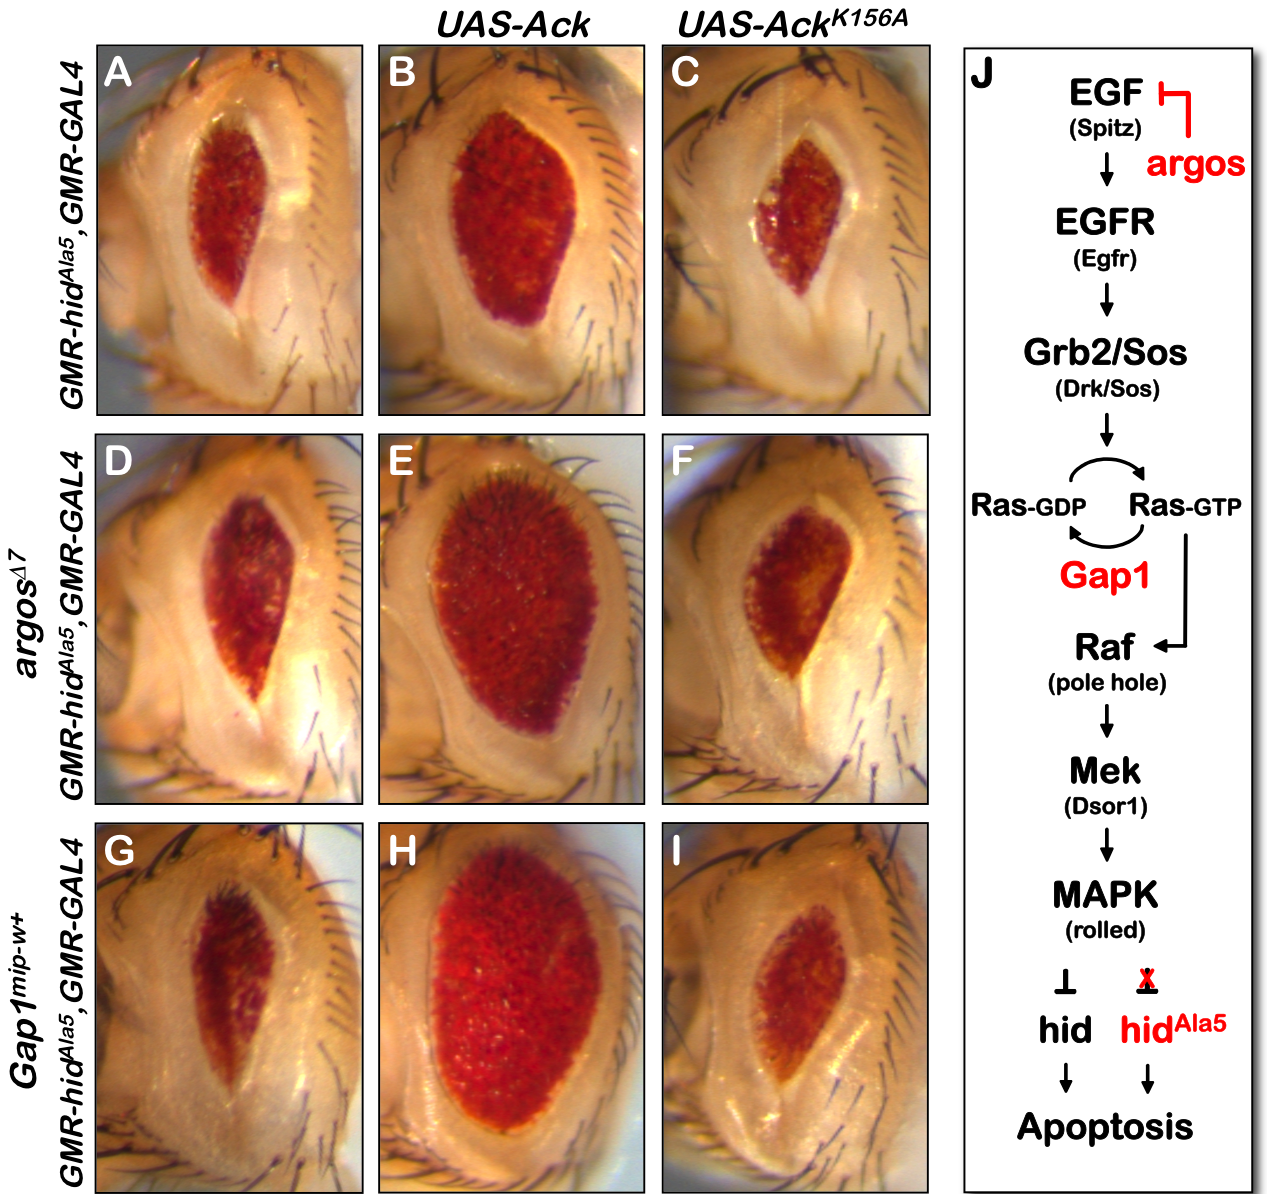 Ack anti-apoptotic function is stimulated by EGF receptor/Ras signaling.